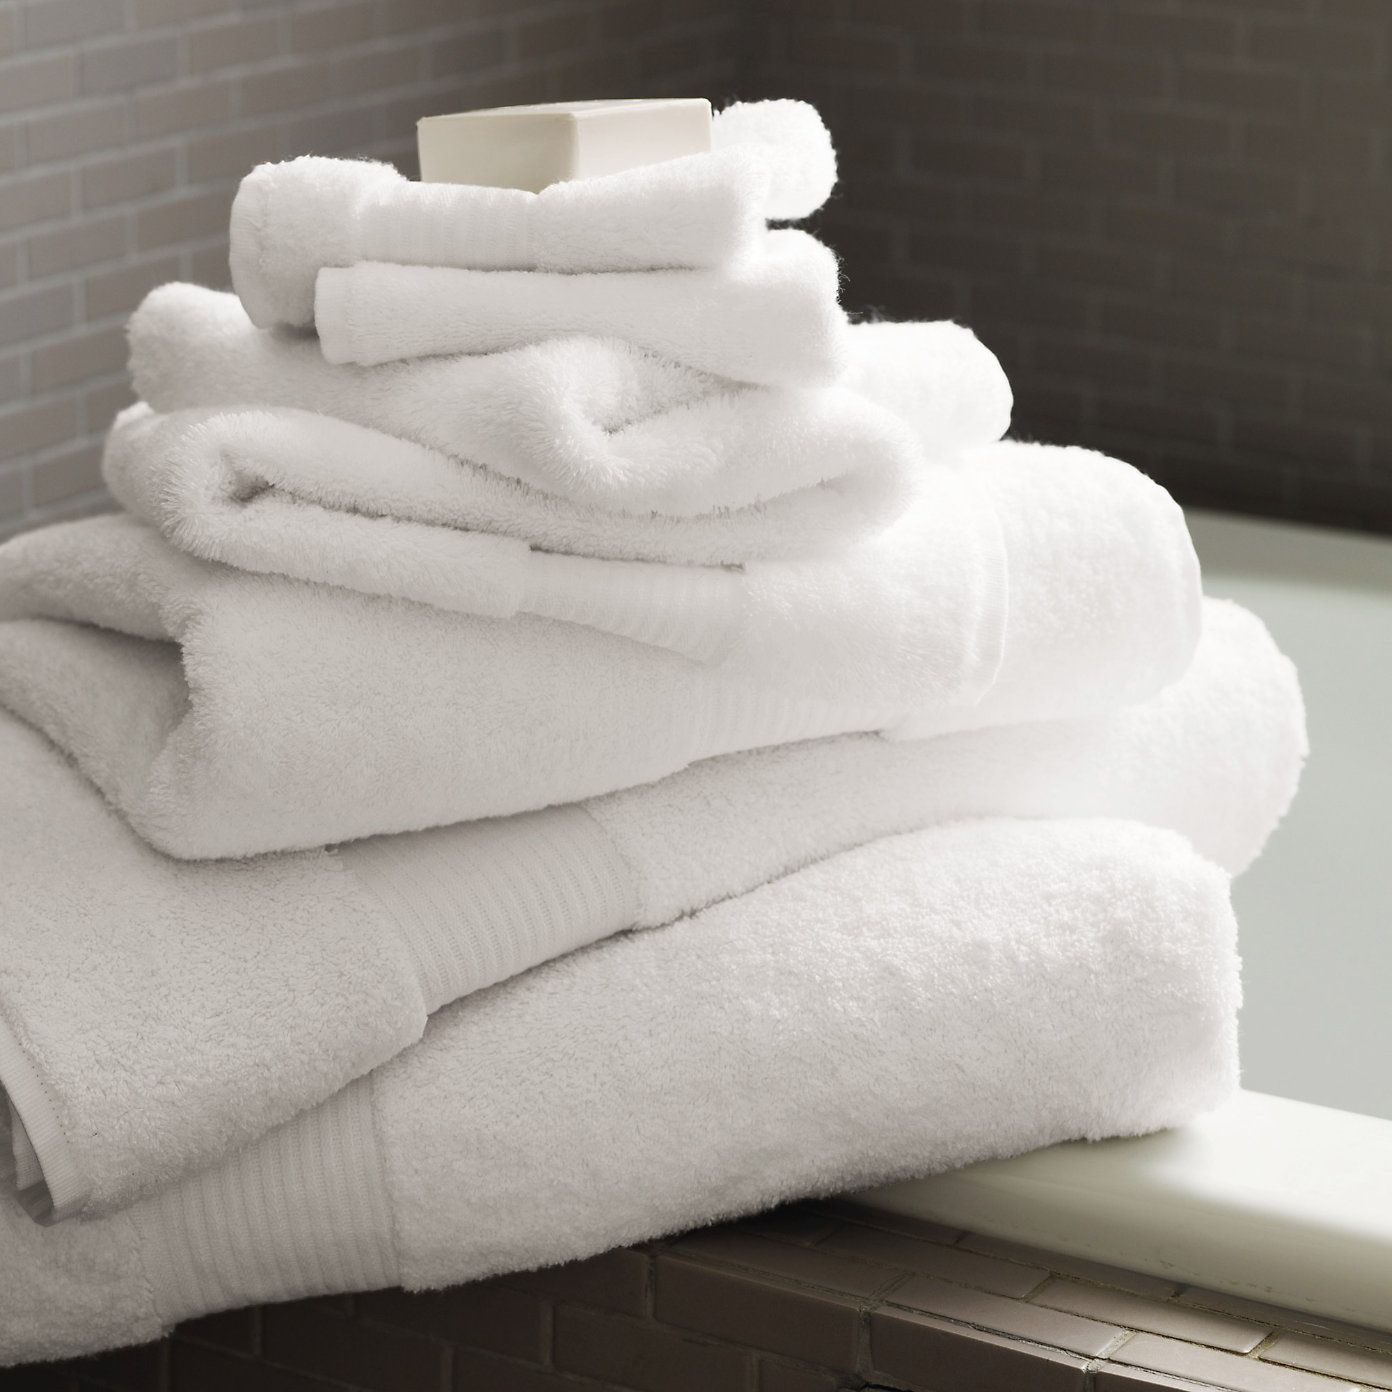 Best 25 egyptian cotton ideas on pinterest egyptian for How to get towels white